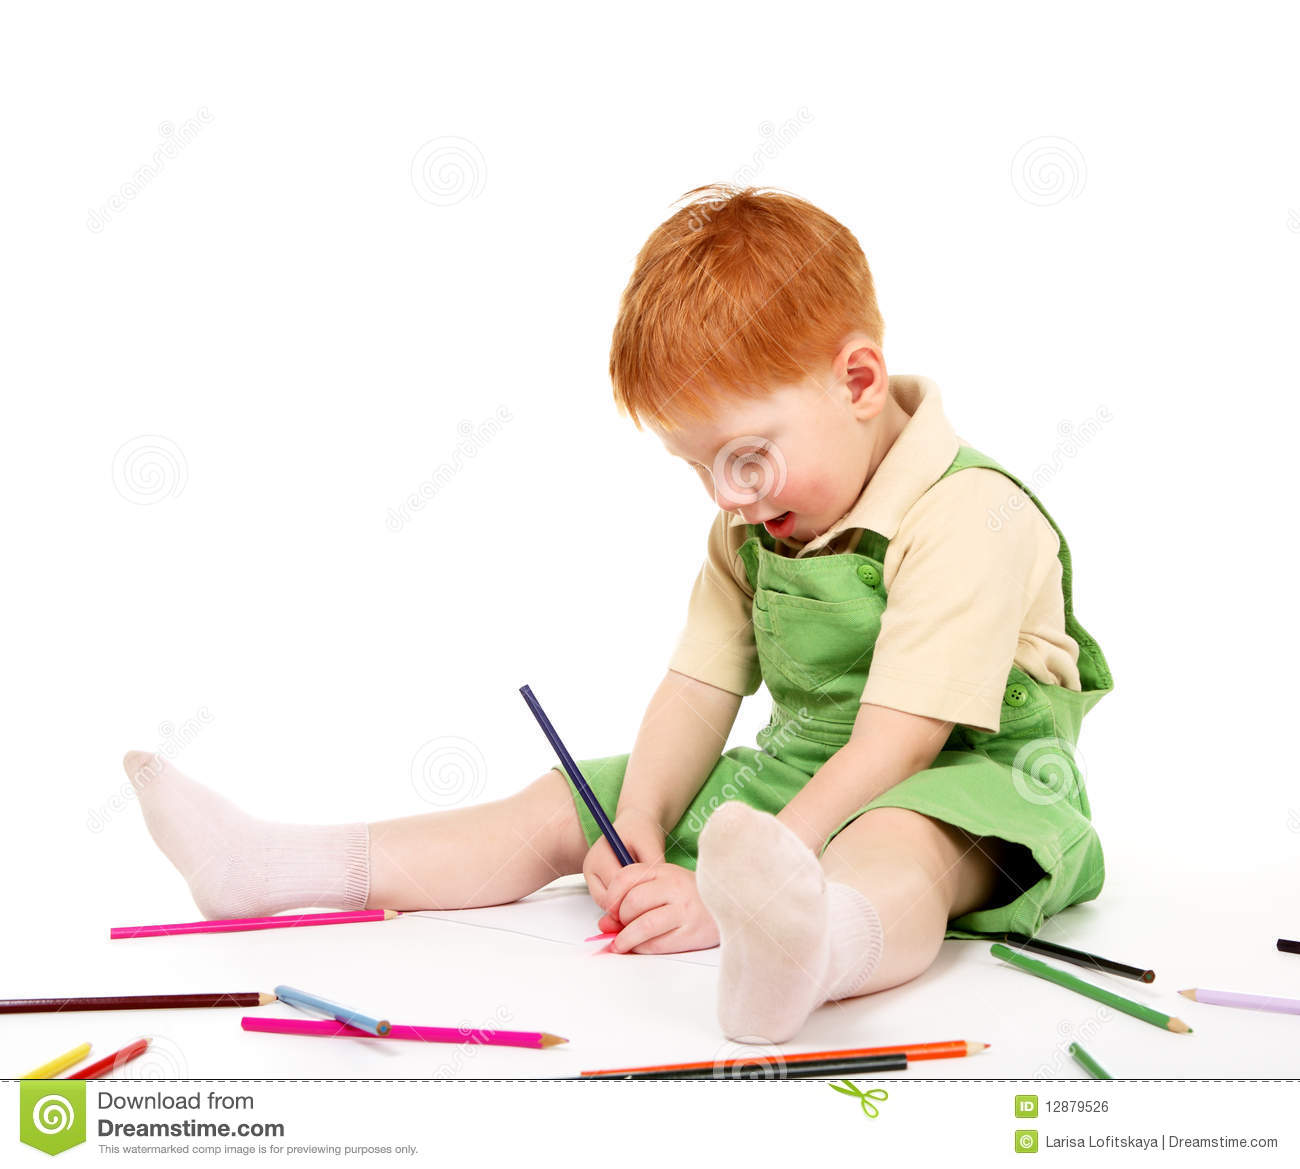 Related Keywords Suggestions for Kid Drawing A Picture